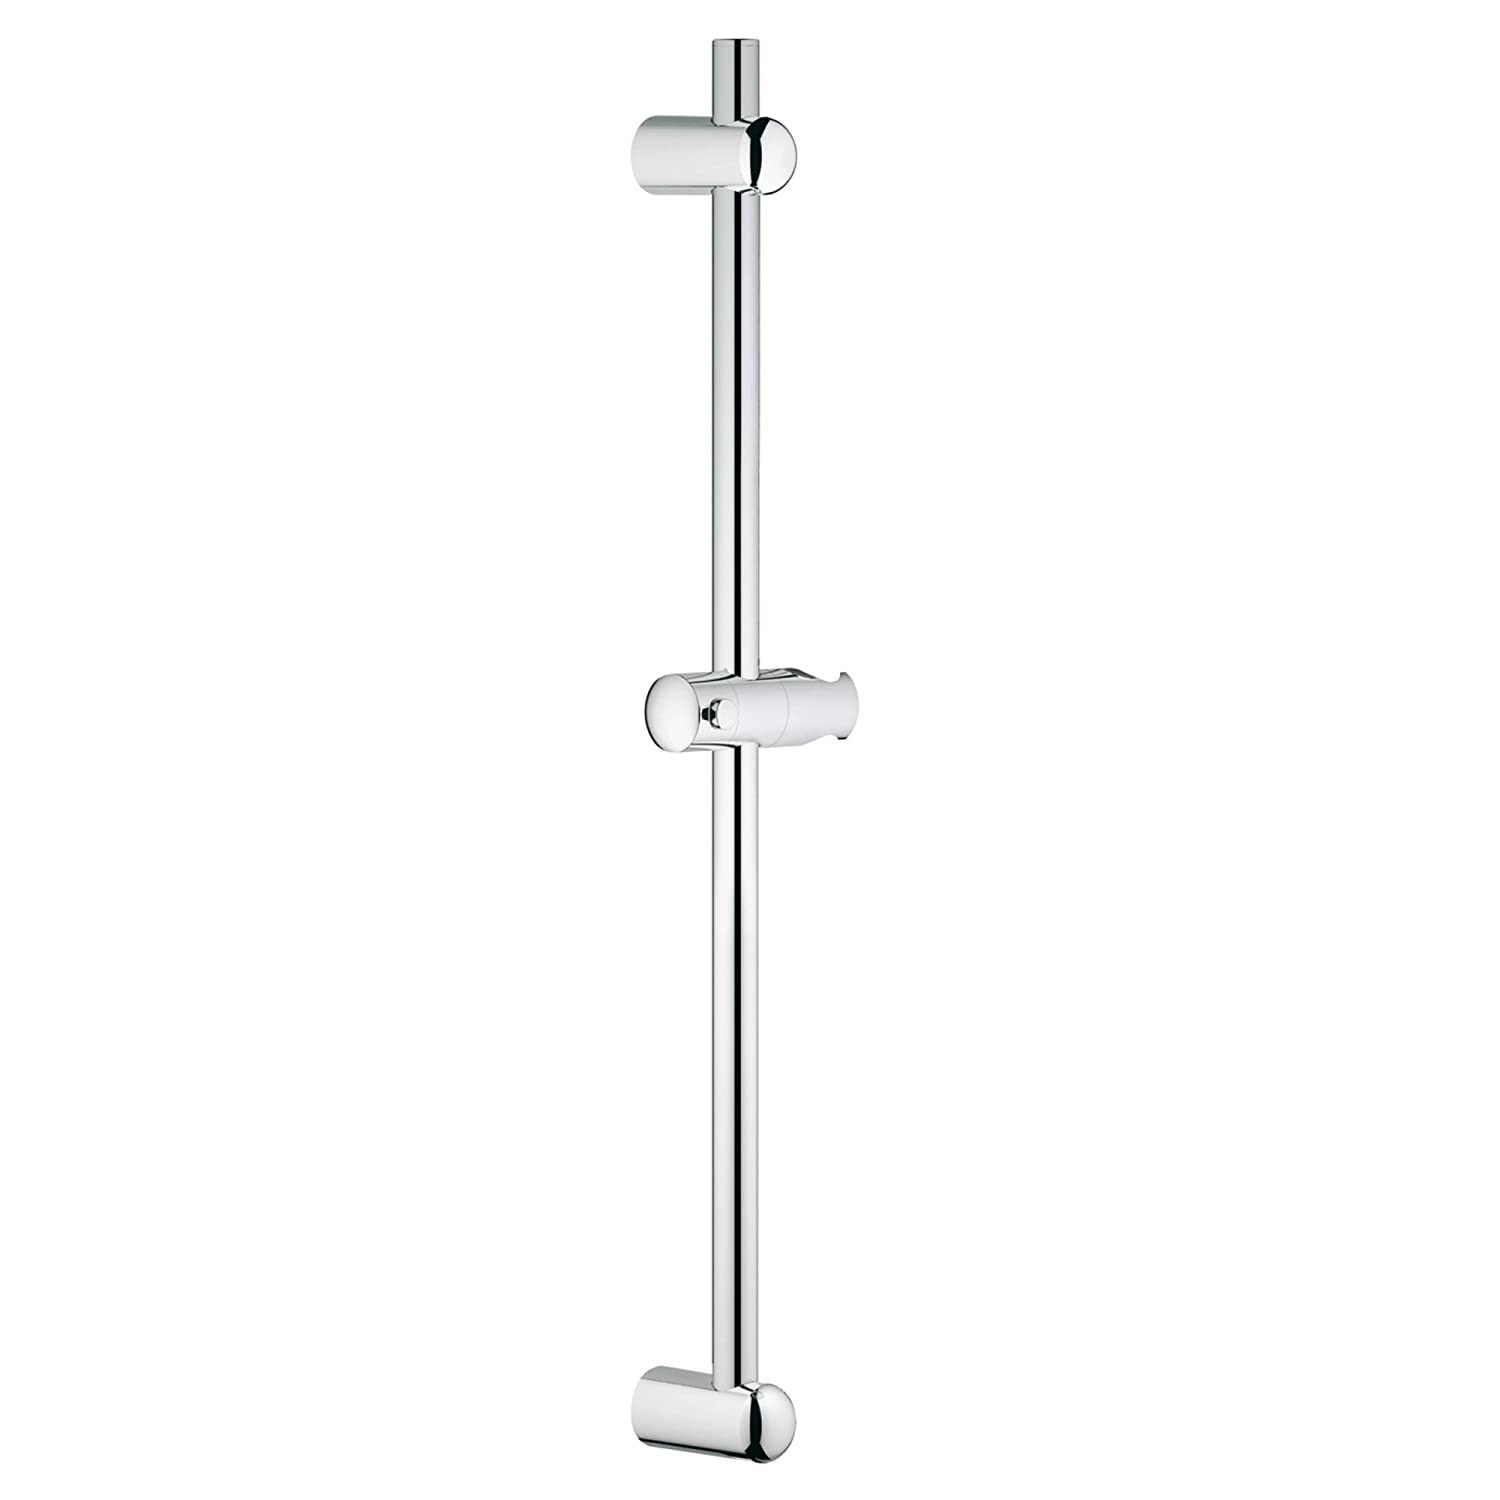 Grohe 000 Euphoria 24 Inch Shower Bar Shower Arms And Slide